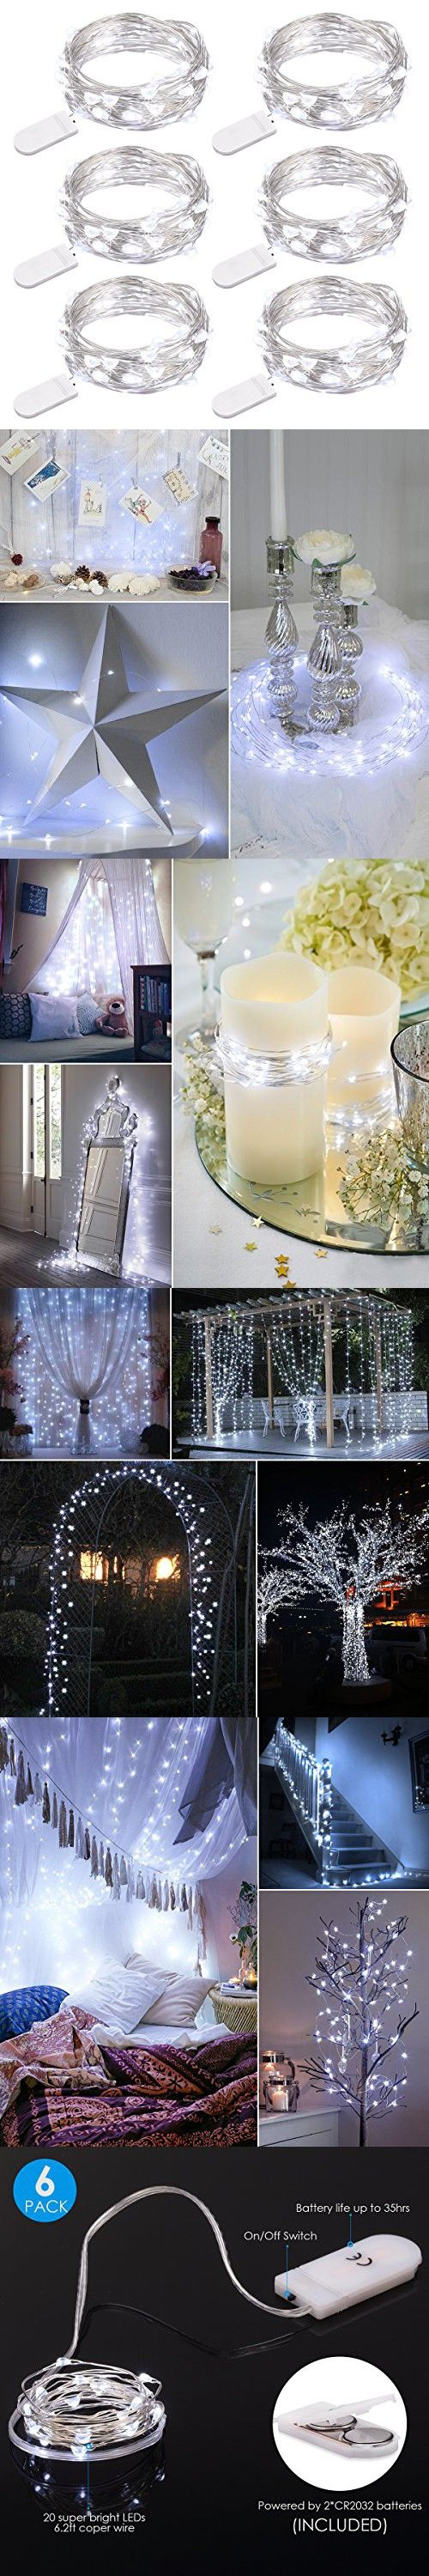 AMIR Fairy String Lights, 20 LED Copper Starry Lights, Indoor Outdoor Halloween String Lights, Battery Operated Copper Patio Wire Lights for Party, Table Decorations, Wedding (White - Pack of 6)